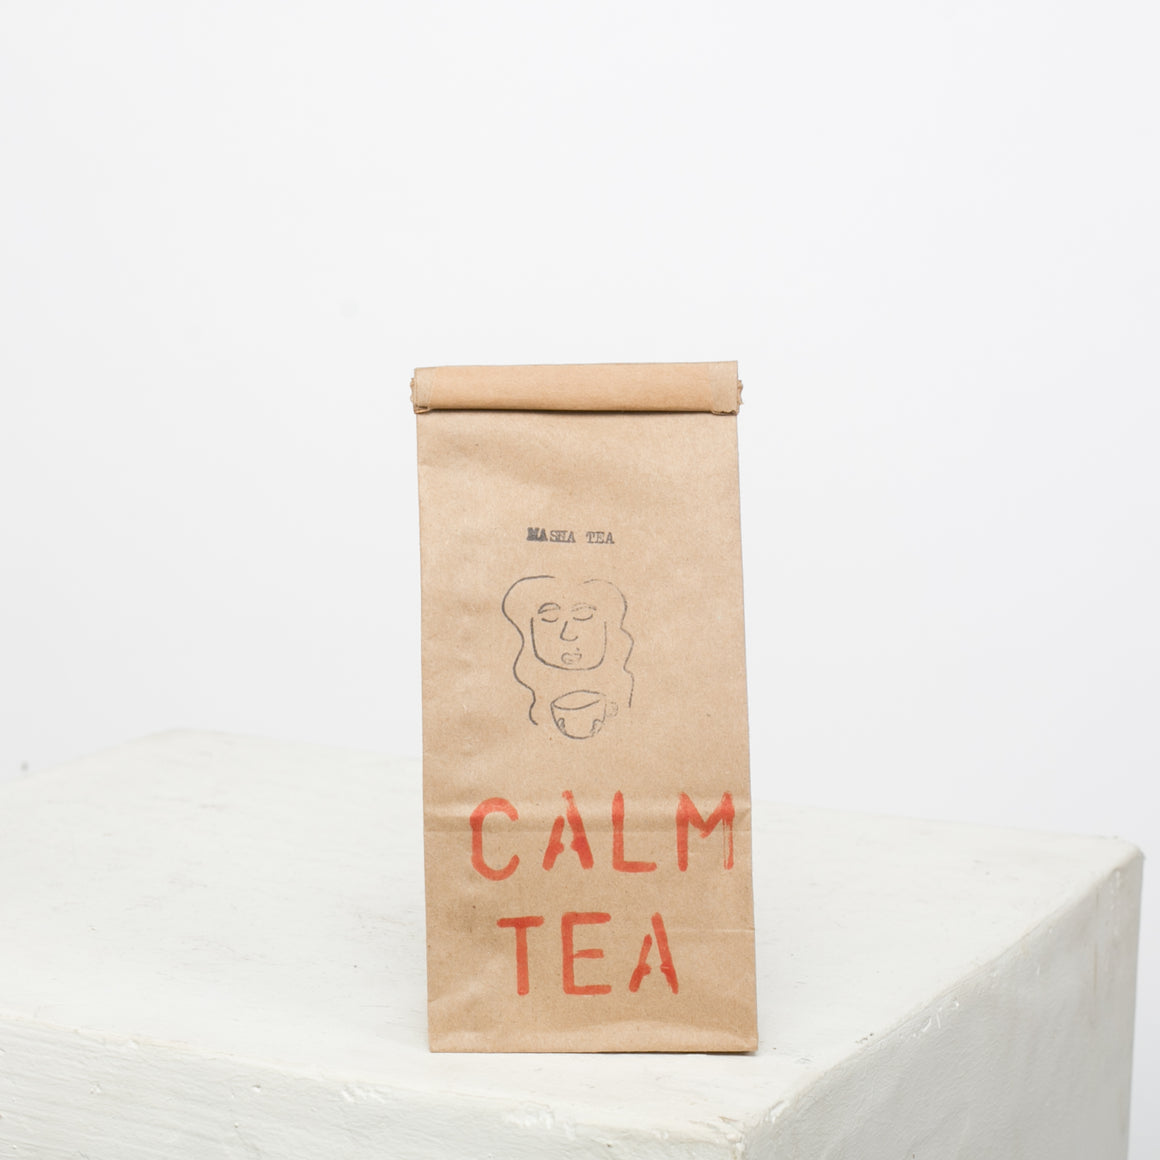 Calm Tea by Masha Tea - individual-medley